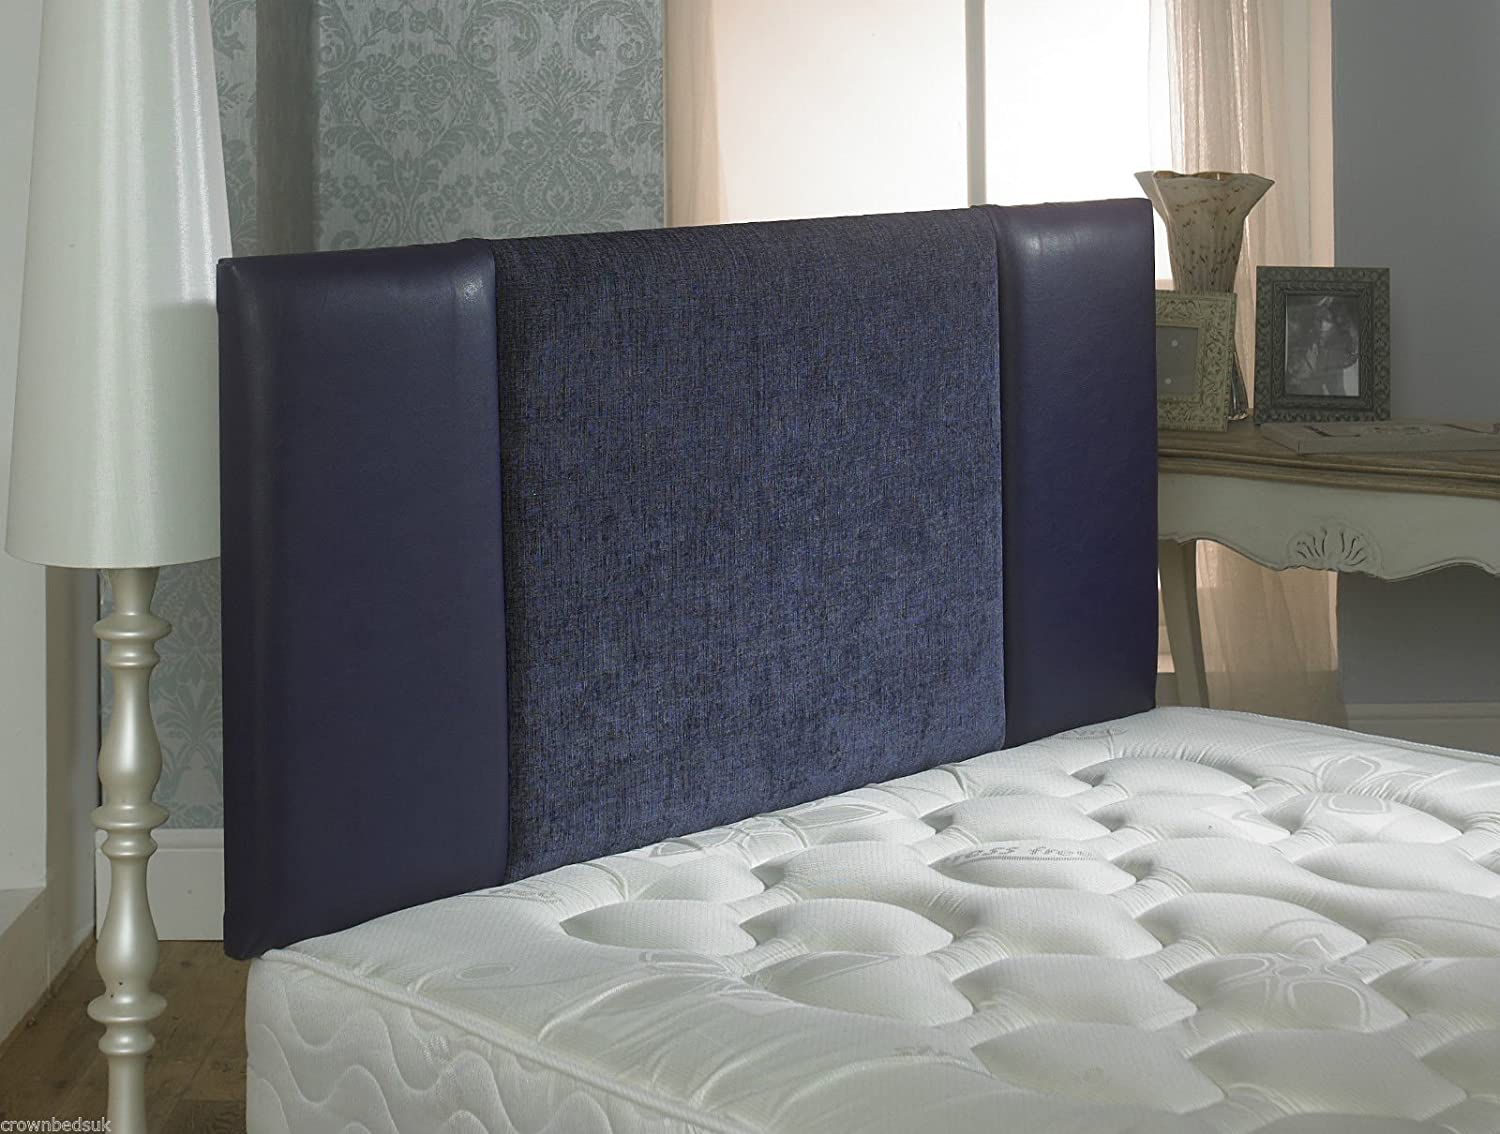 CROWNBEDSUK QUALITY OSLO FAUX LEATHER & CHENILLE HEADBOARD IN 2ft6,3ft,4ft,4ft6,5ft,6ft (2FT6 SMALL SINGLE, Black)